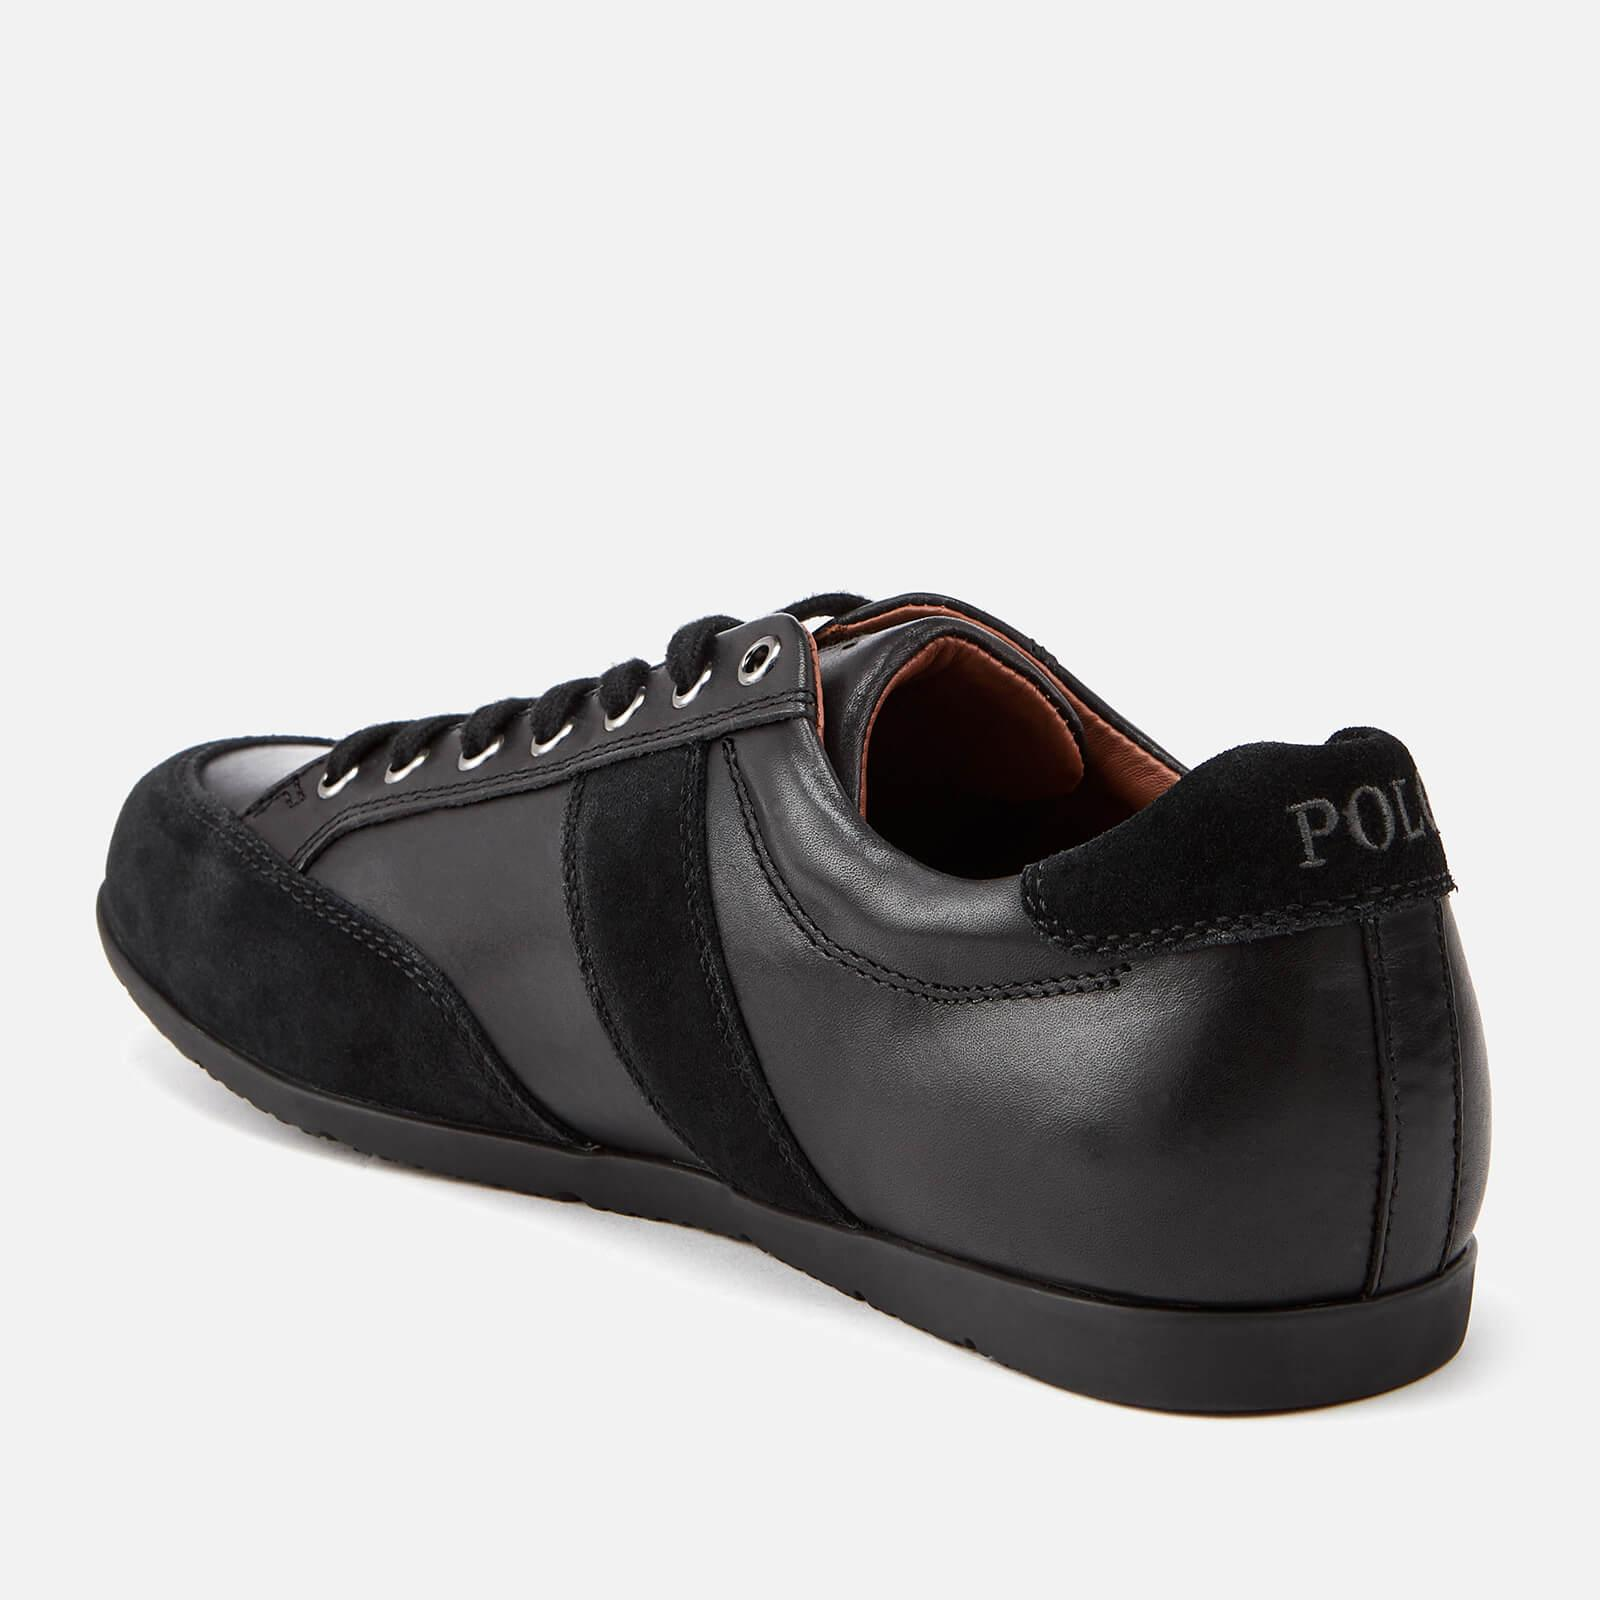 Polo Ralph Lauren Price Nappa/suede Low